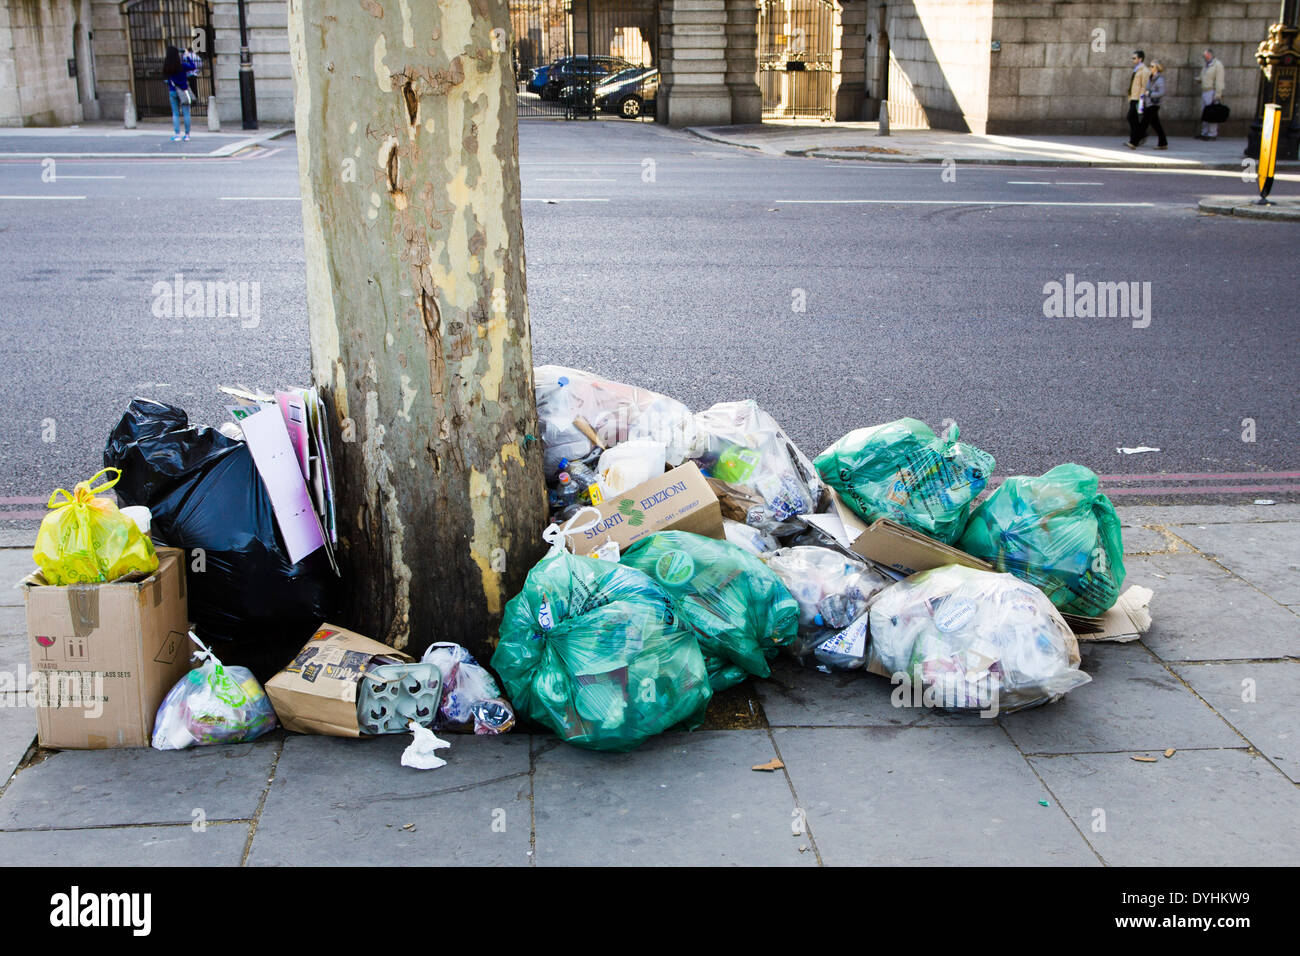 Rubbish/trash heaped up in bags under a tree on a pavemnet, London, England, UK - Stock Image